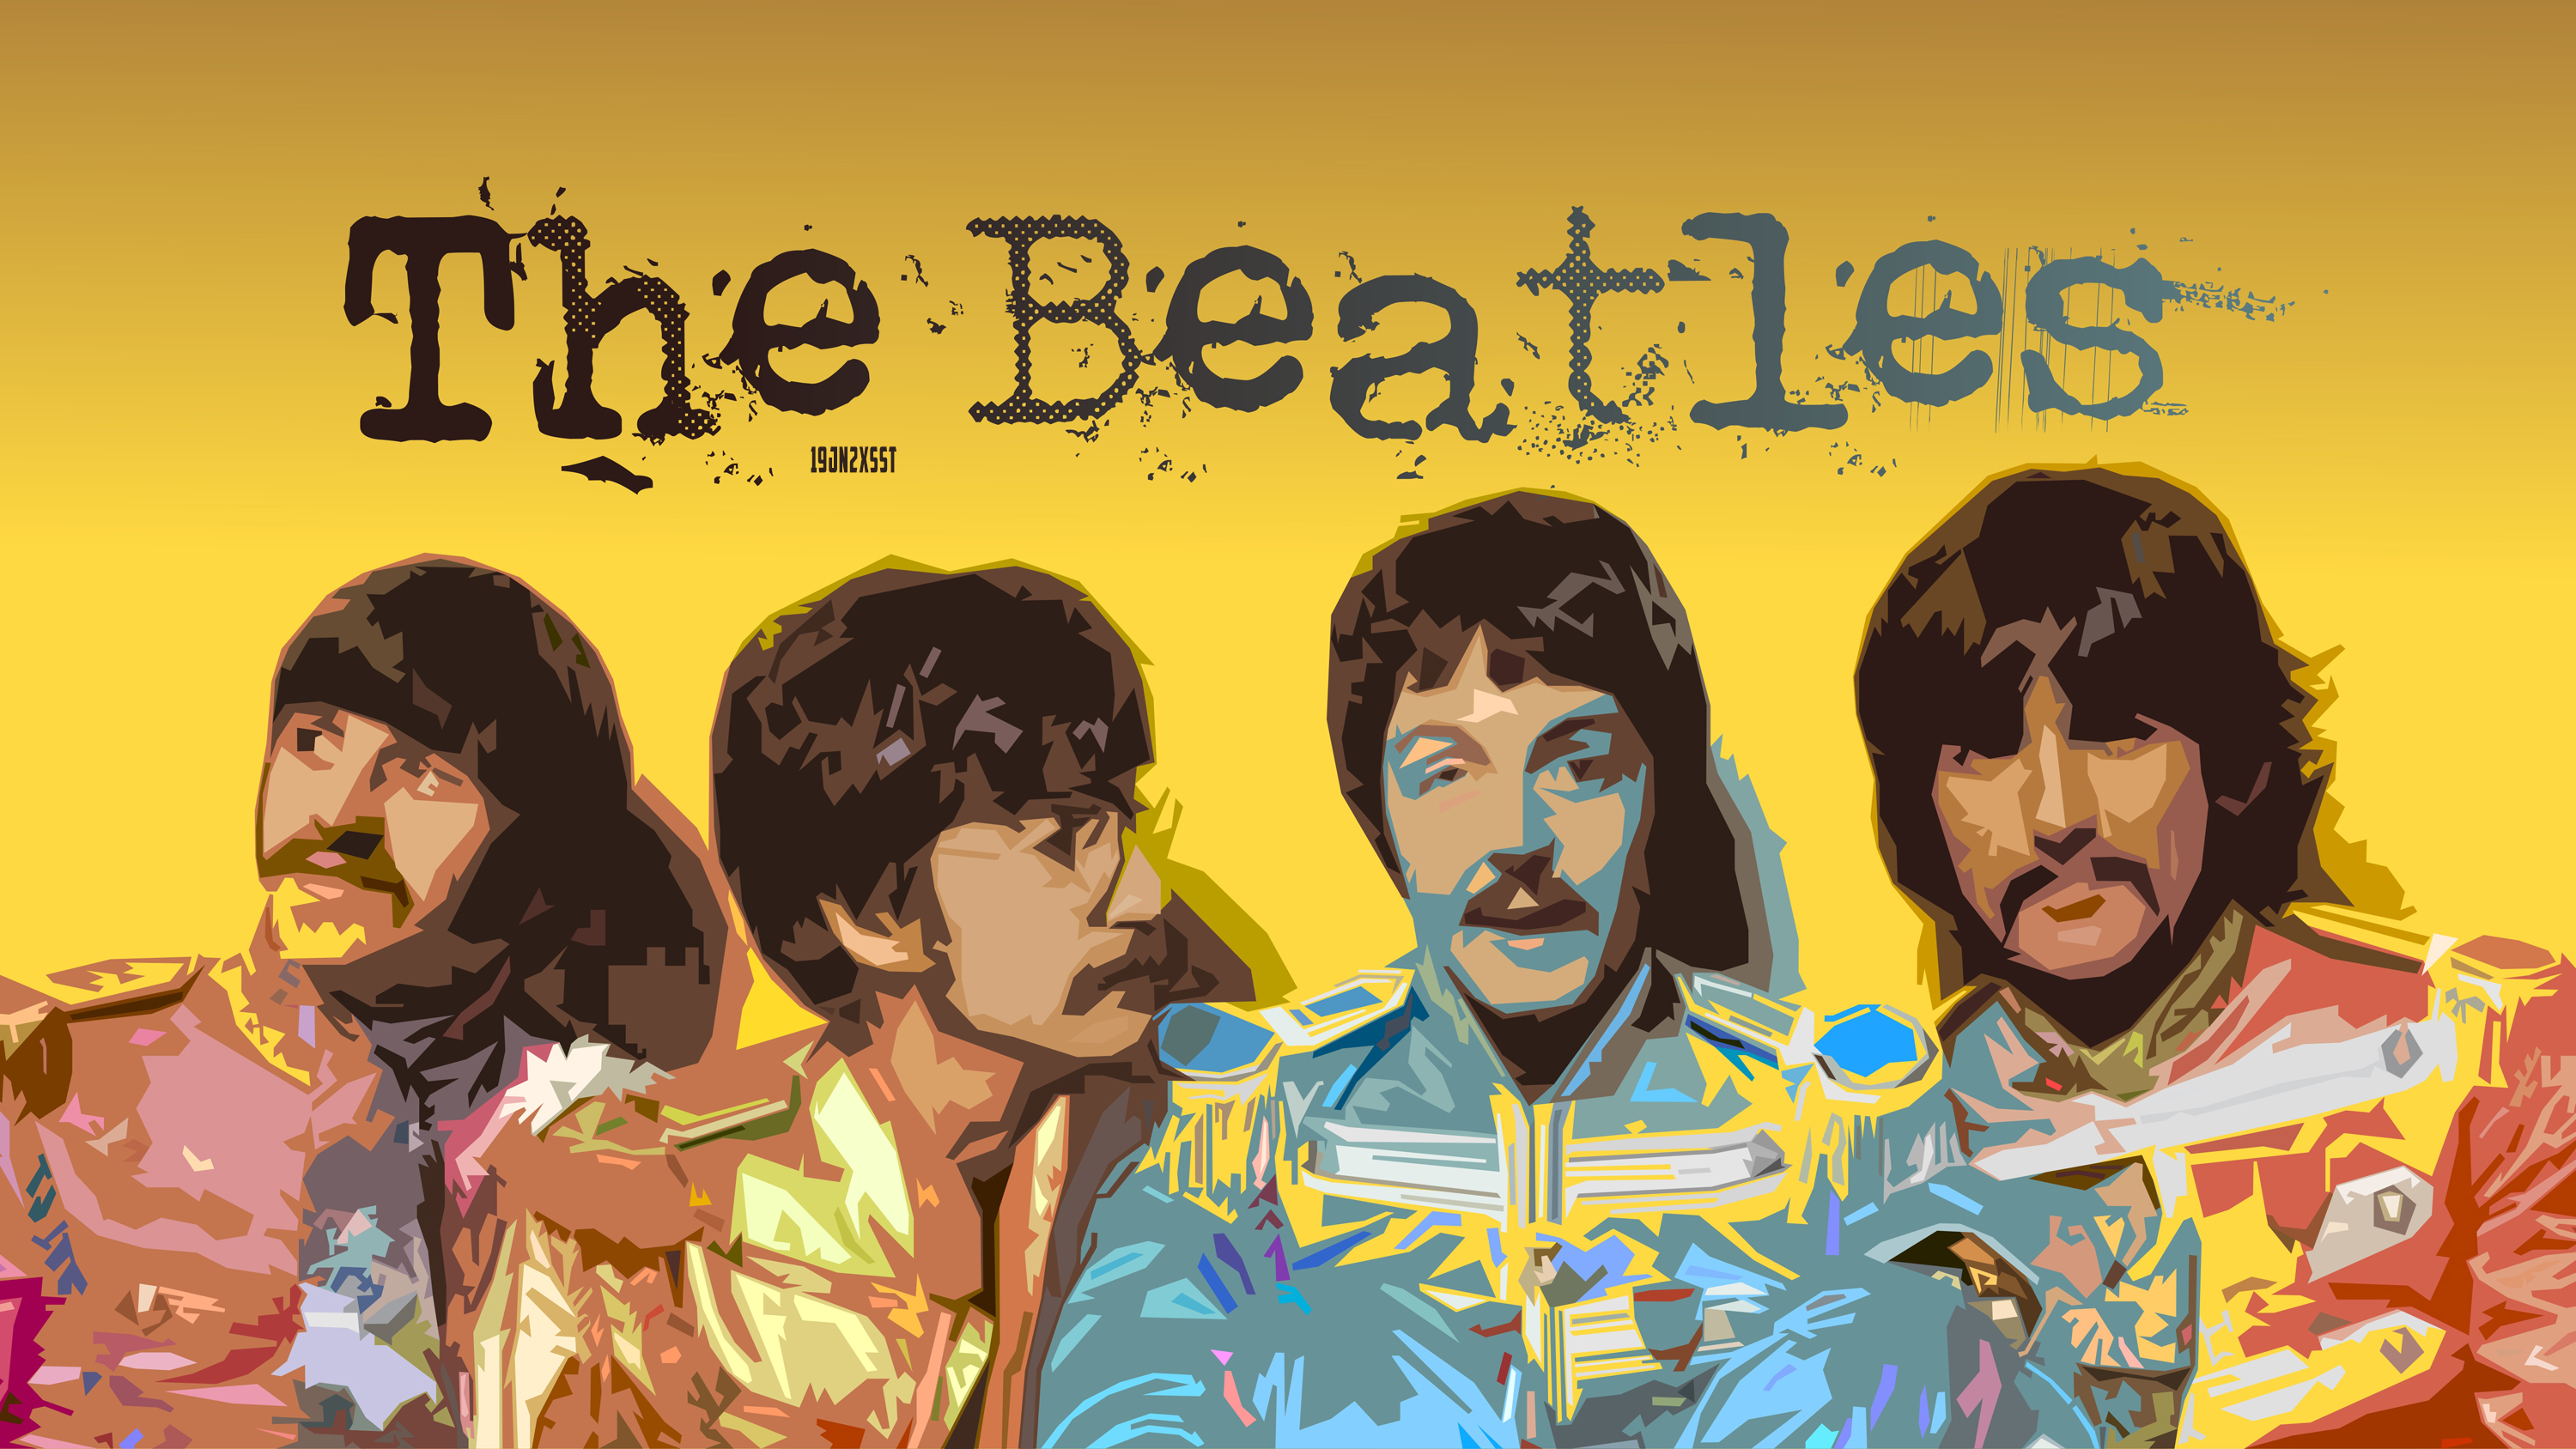 The Beatles Wallpapers ID845891